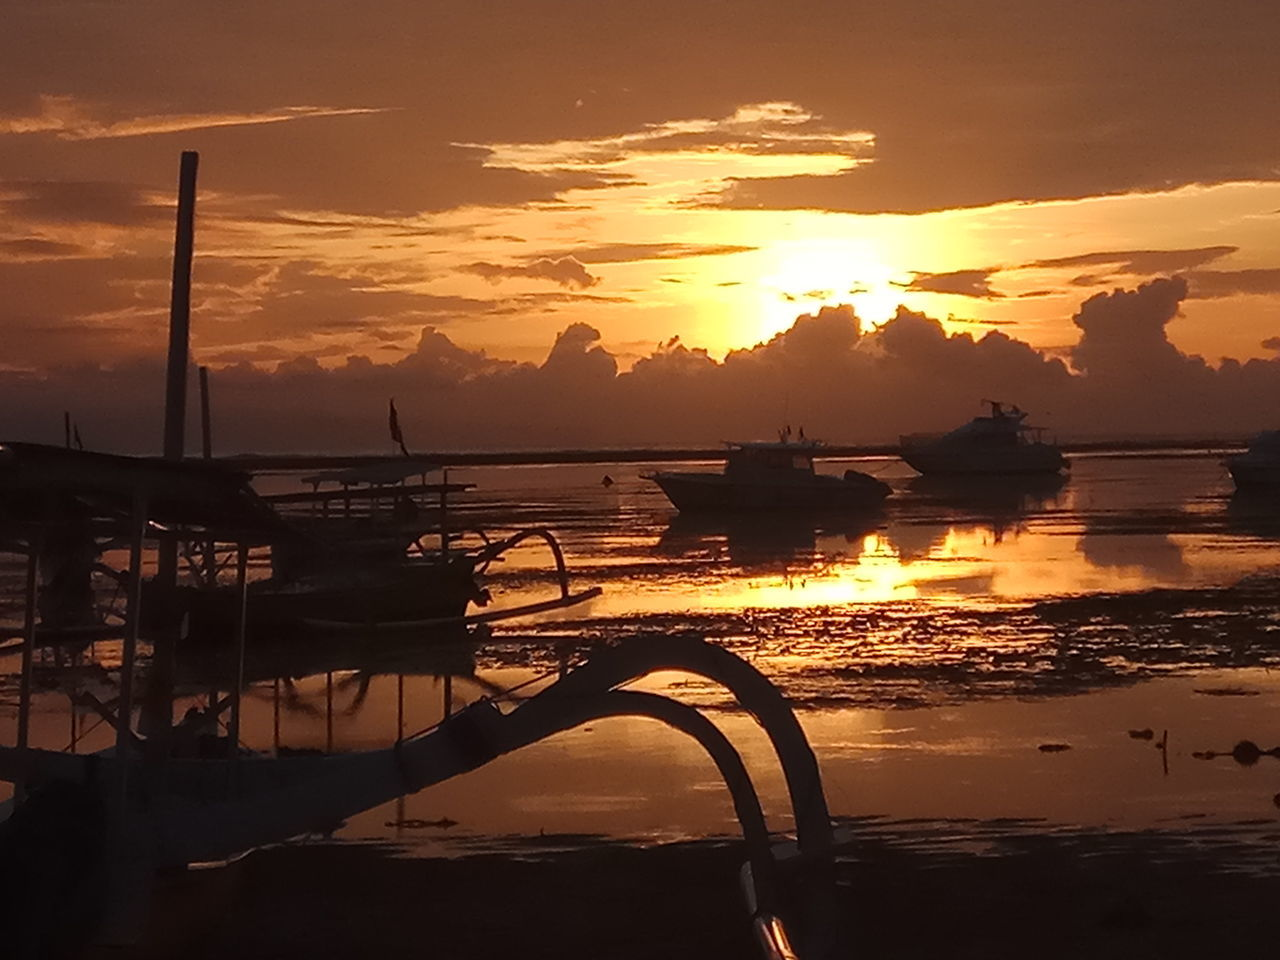 sunset, water, nautical vessel, orange color, transportation, mode of transport, silhouette, sky, reflection, nature, beauty in nature, scenics, boat, cloud - sky, sea, moored, sun, tranquility, no people, sunlight, outdoors, sailing, outrigger